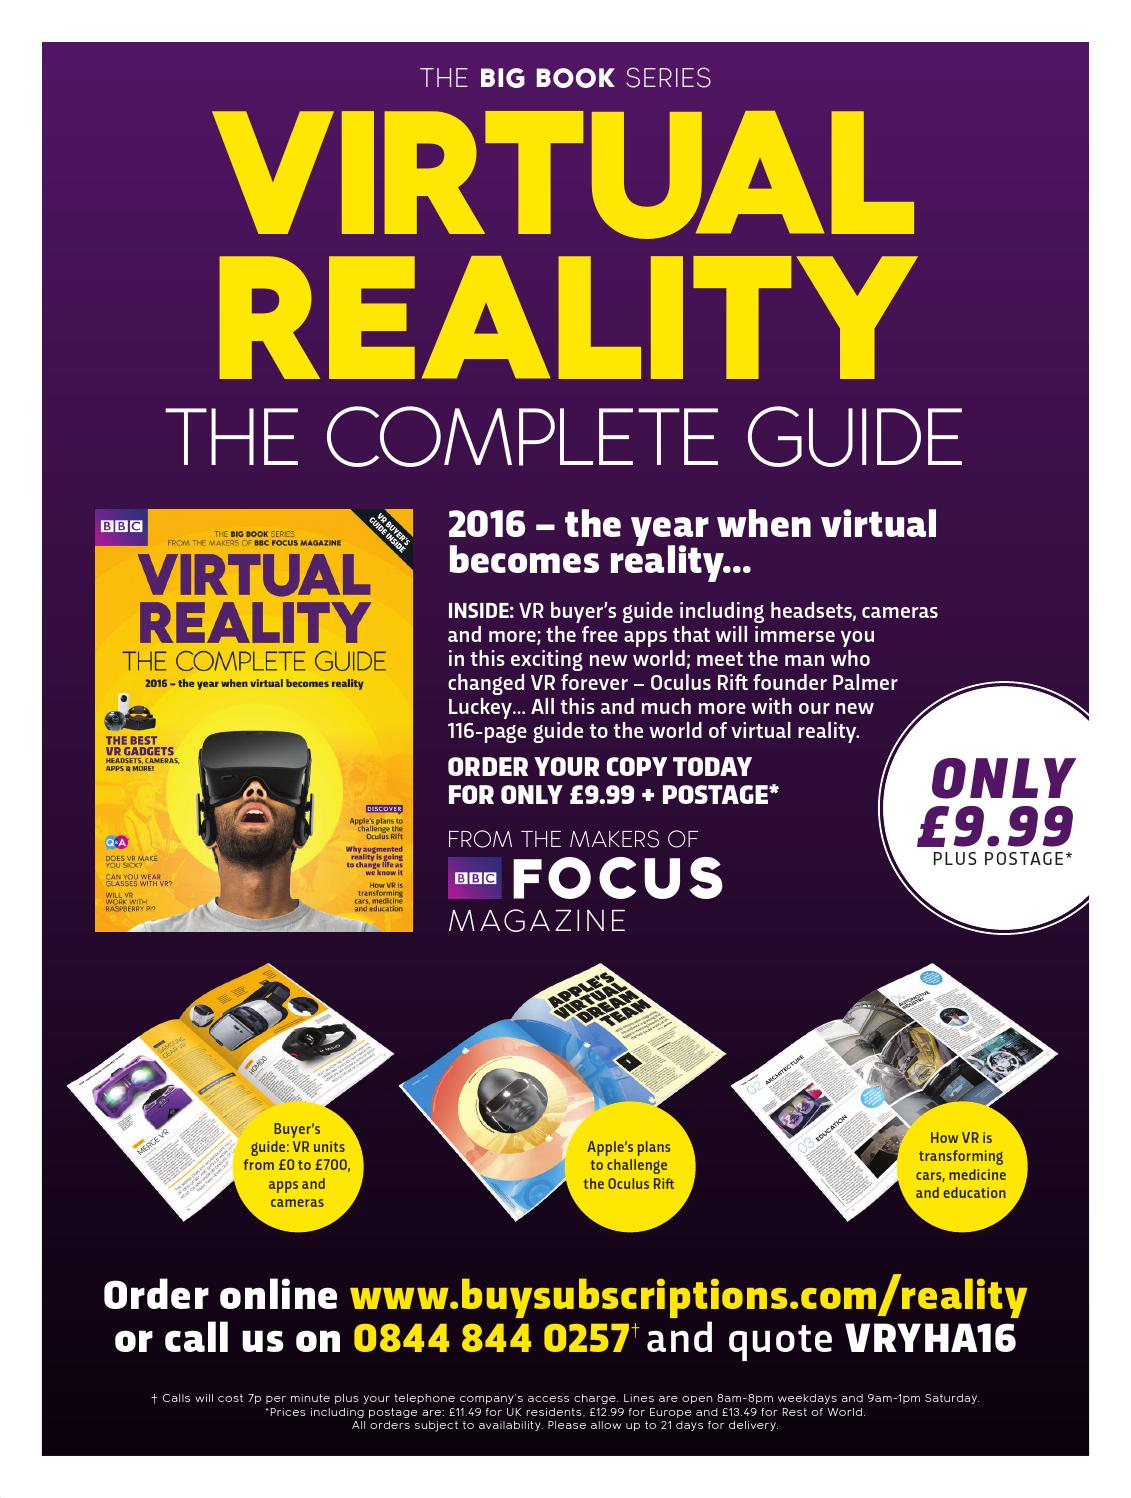 Virtual Reality - The Complete Guide sampler by Immediate